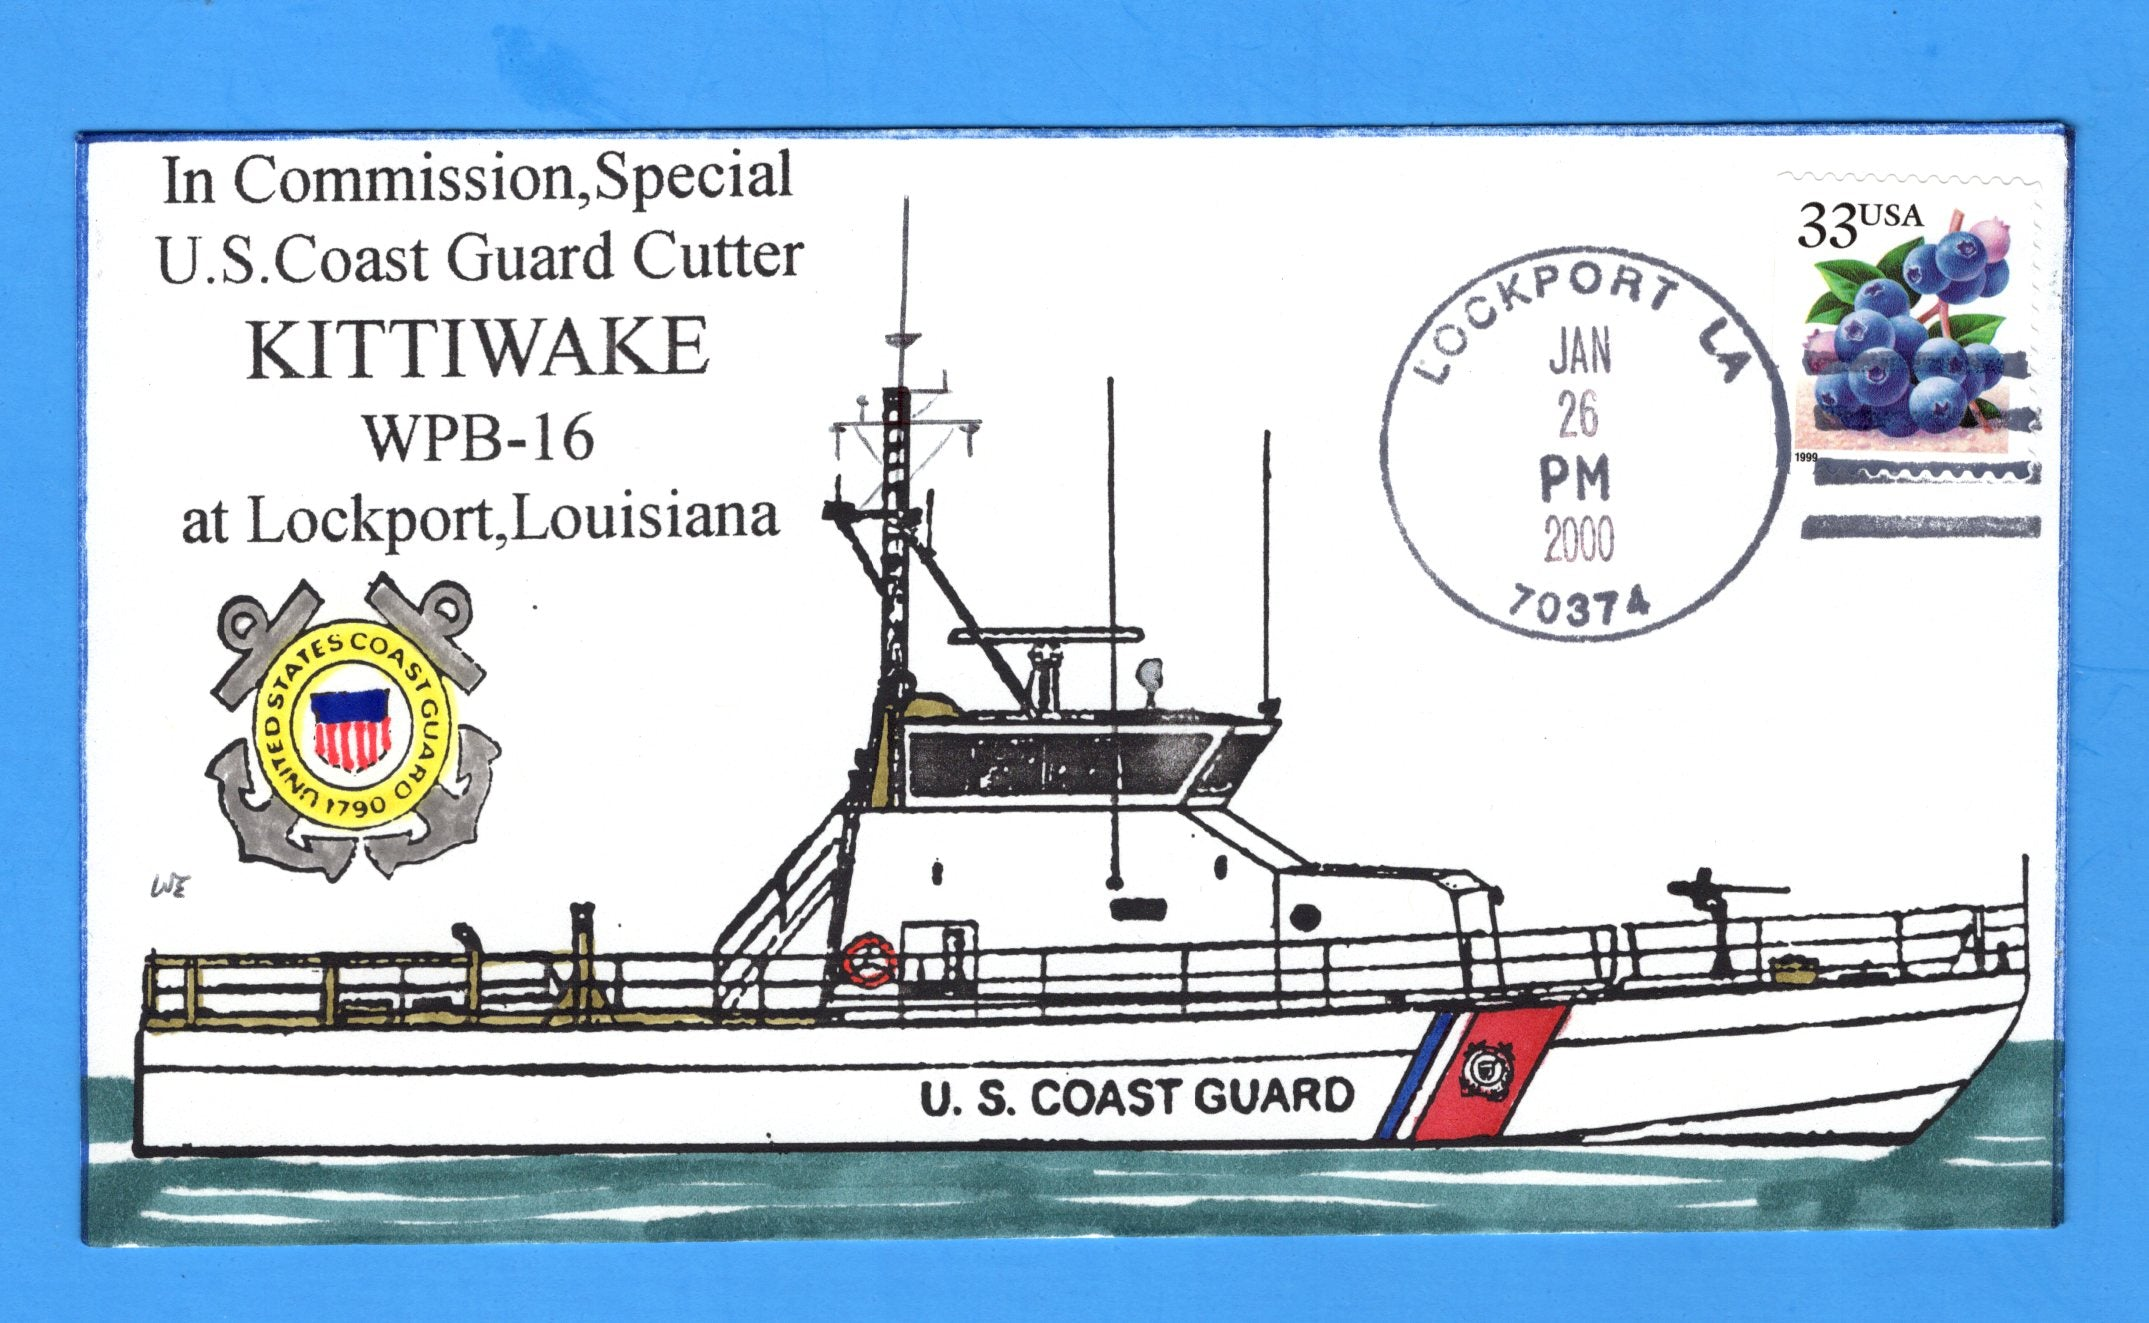 USCGC Kittiwake WPB-16 In Commission Special January 26, 2000 - Hand Drawn and Colored Cachet by Bill Everett